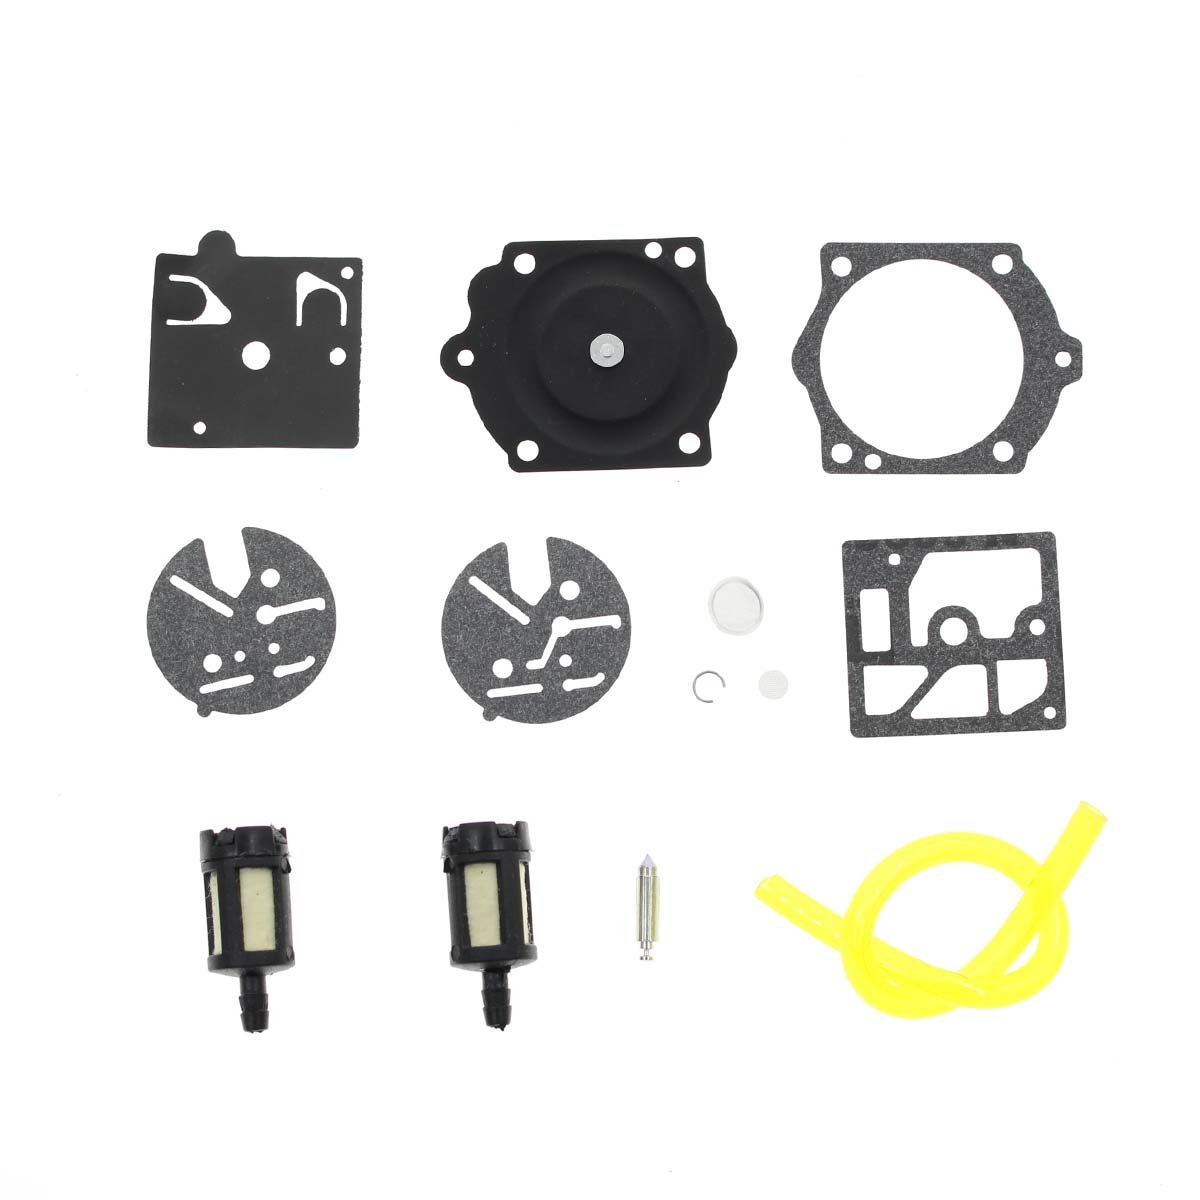 Autokay Carb Repair Kit For Walbro Hdc Homelite Ez Chainsaw Fuel Filter Super 350 360 150 60 Automotive